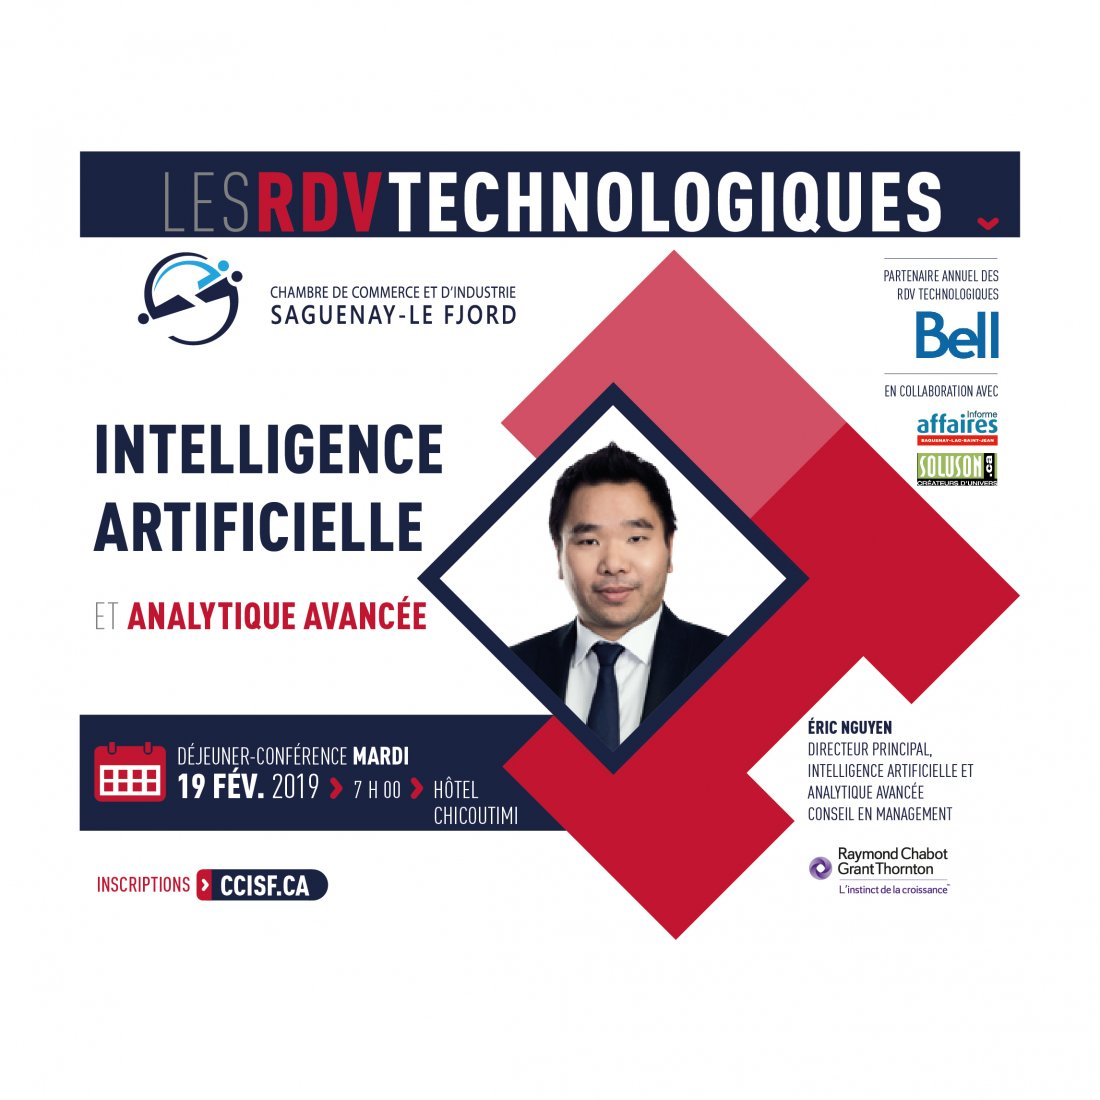 Intelligence artificielle et analytique avancée